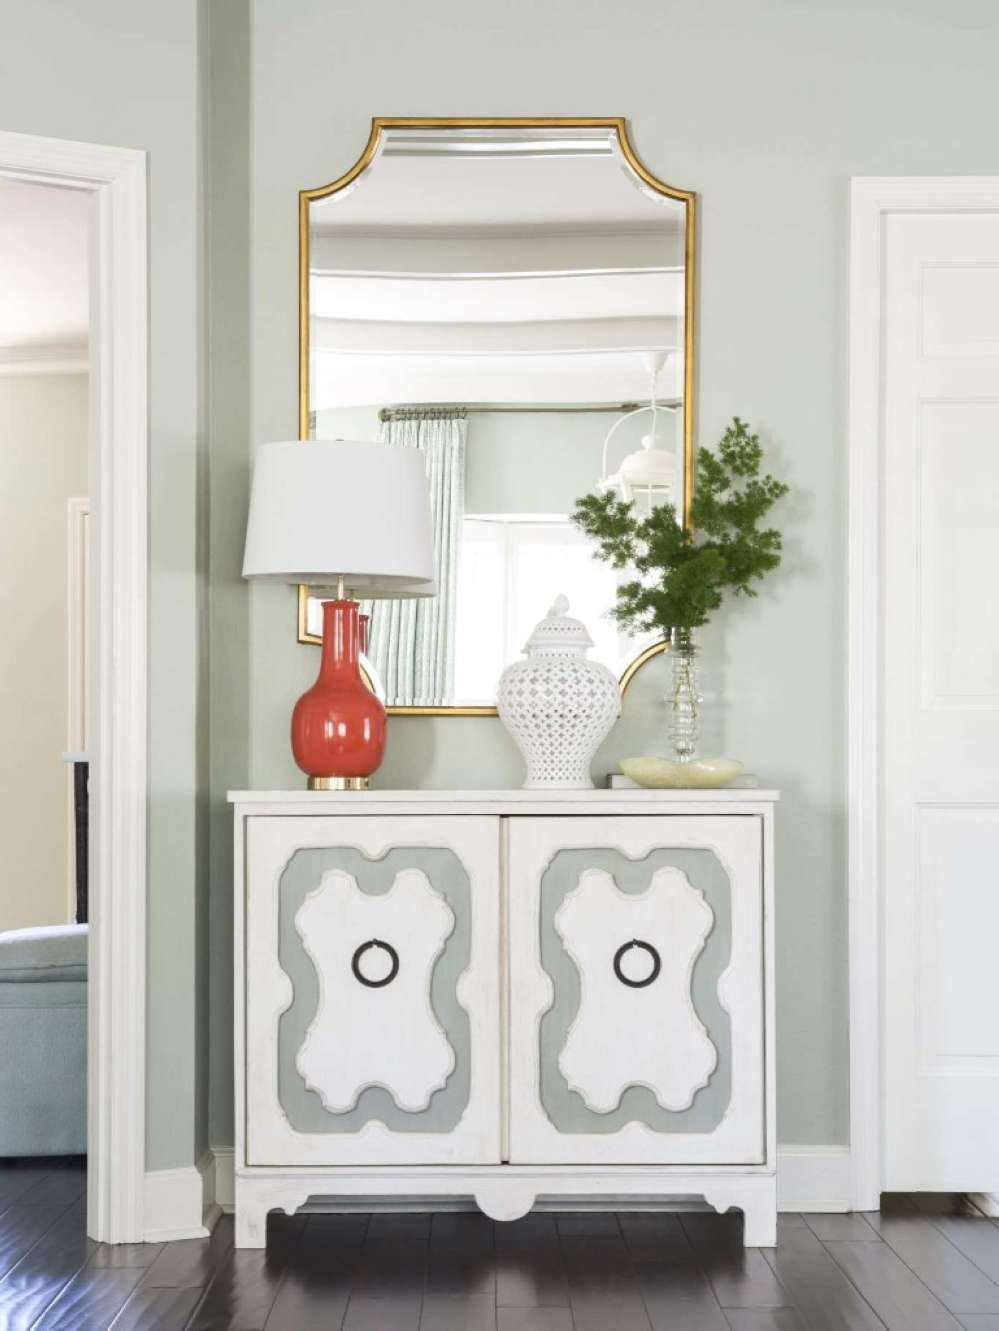 Krista-Lewis-Interior-Design-arkansas-Fashionably-Functional_003Optmized